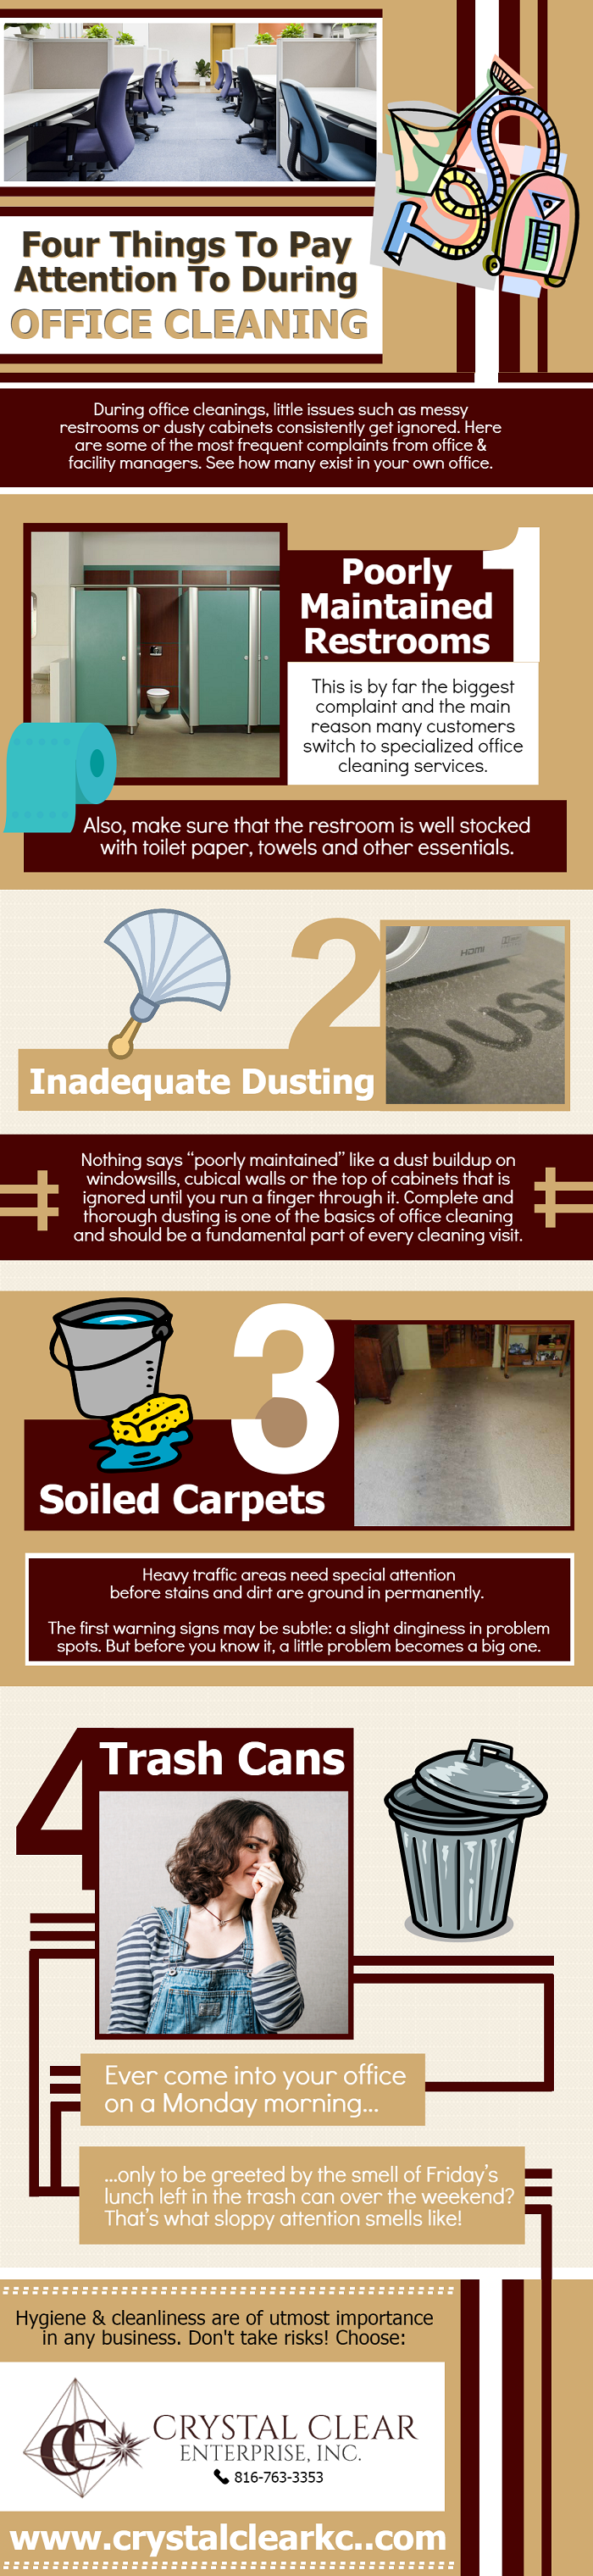 Four Things to Play Attention to During Office Cleaning